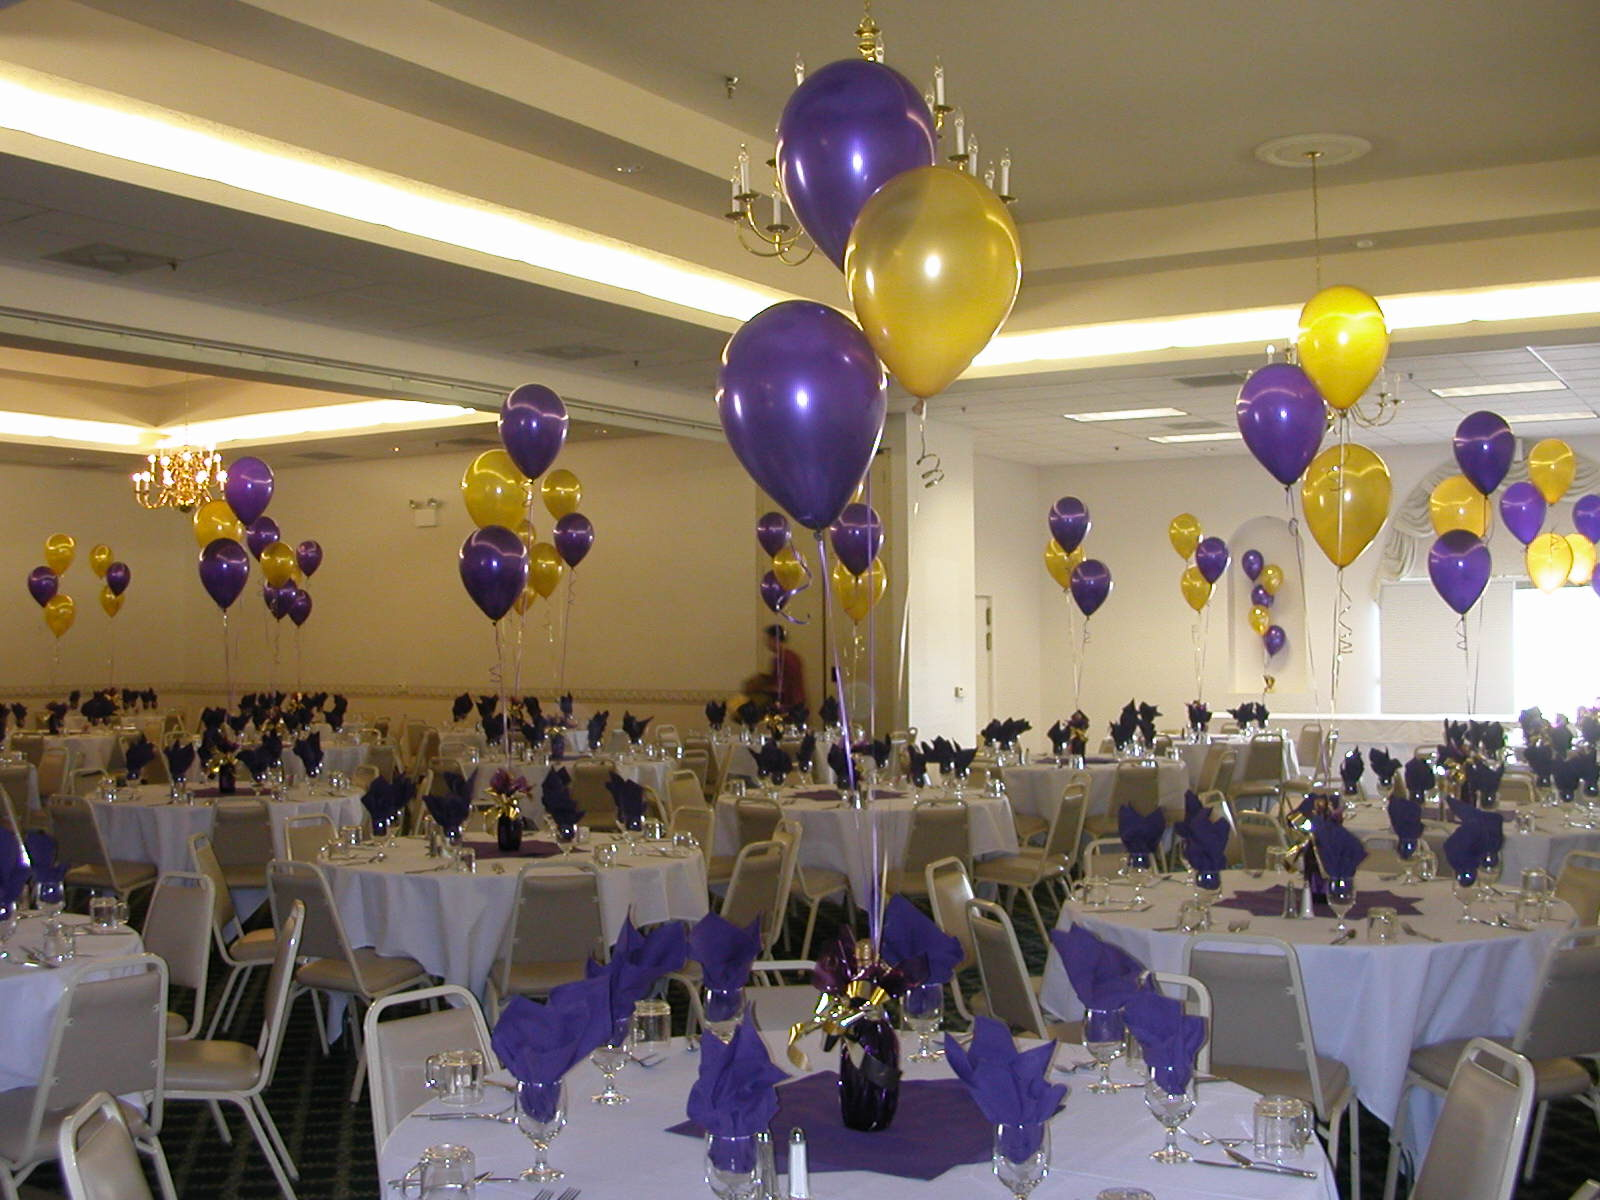 balloon decor of central california centerpiece balloon centerpiece ...